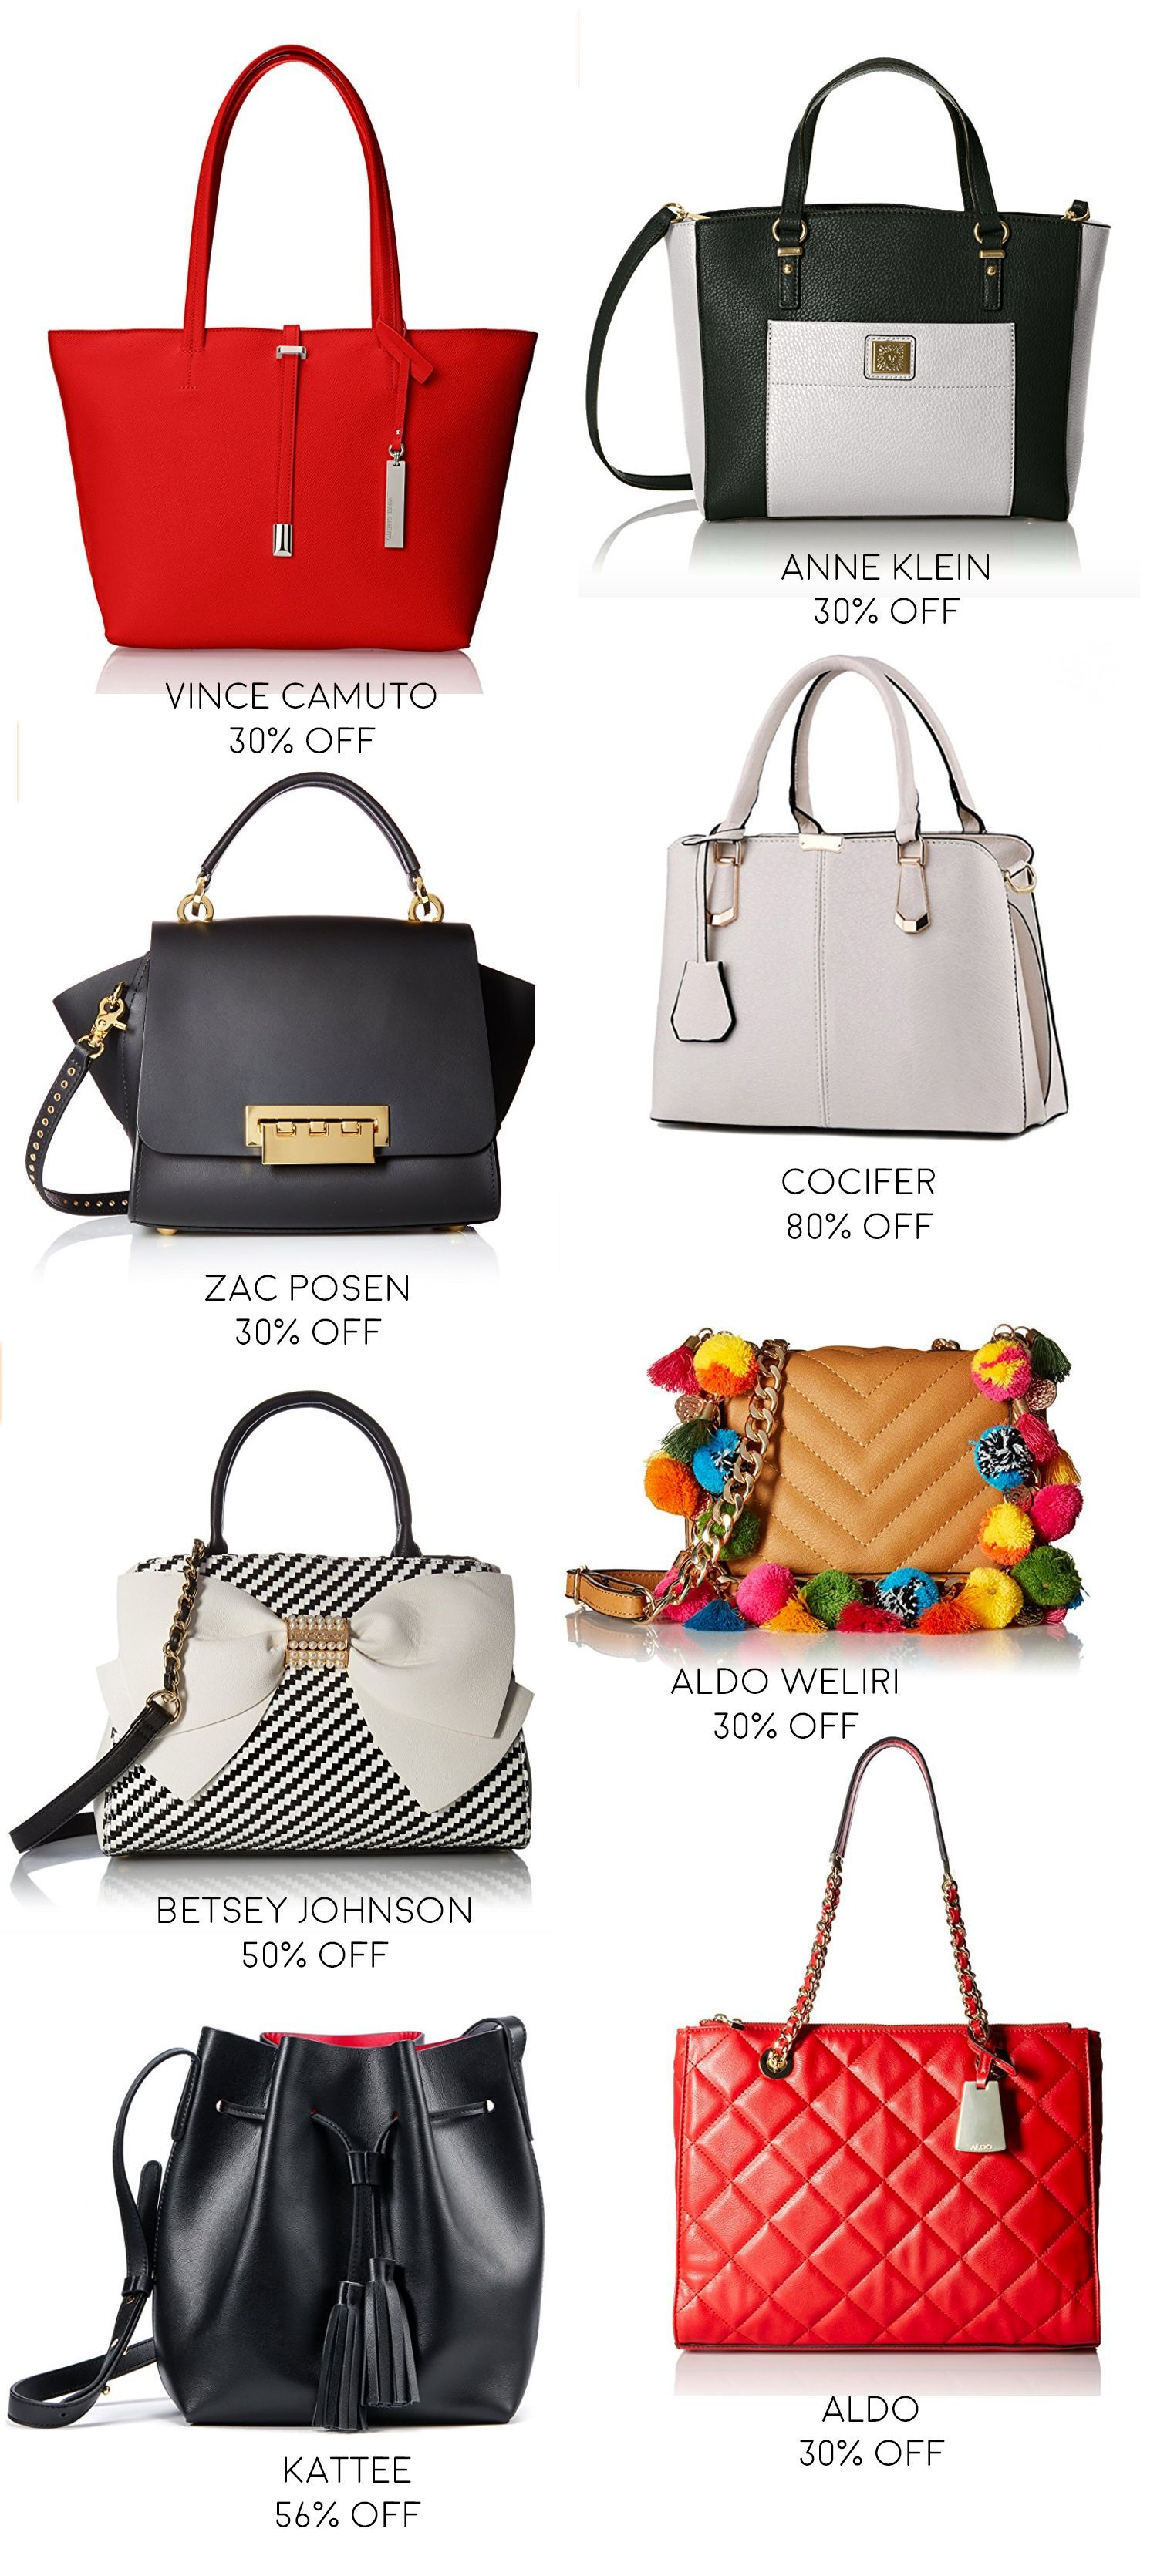 ae6e590bb3 Cute designer and designer dupe handbags on MAJOR sale for Amazon Prime  Day! | Prime Day Shopping Tips 2017 by Stephanie Ziajka from Diary of a  Debutante # ...